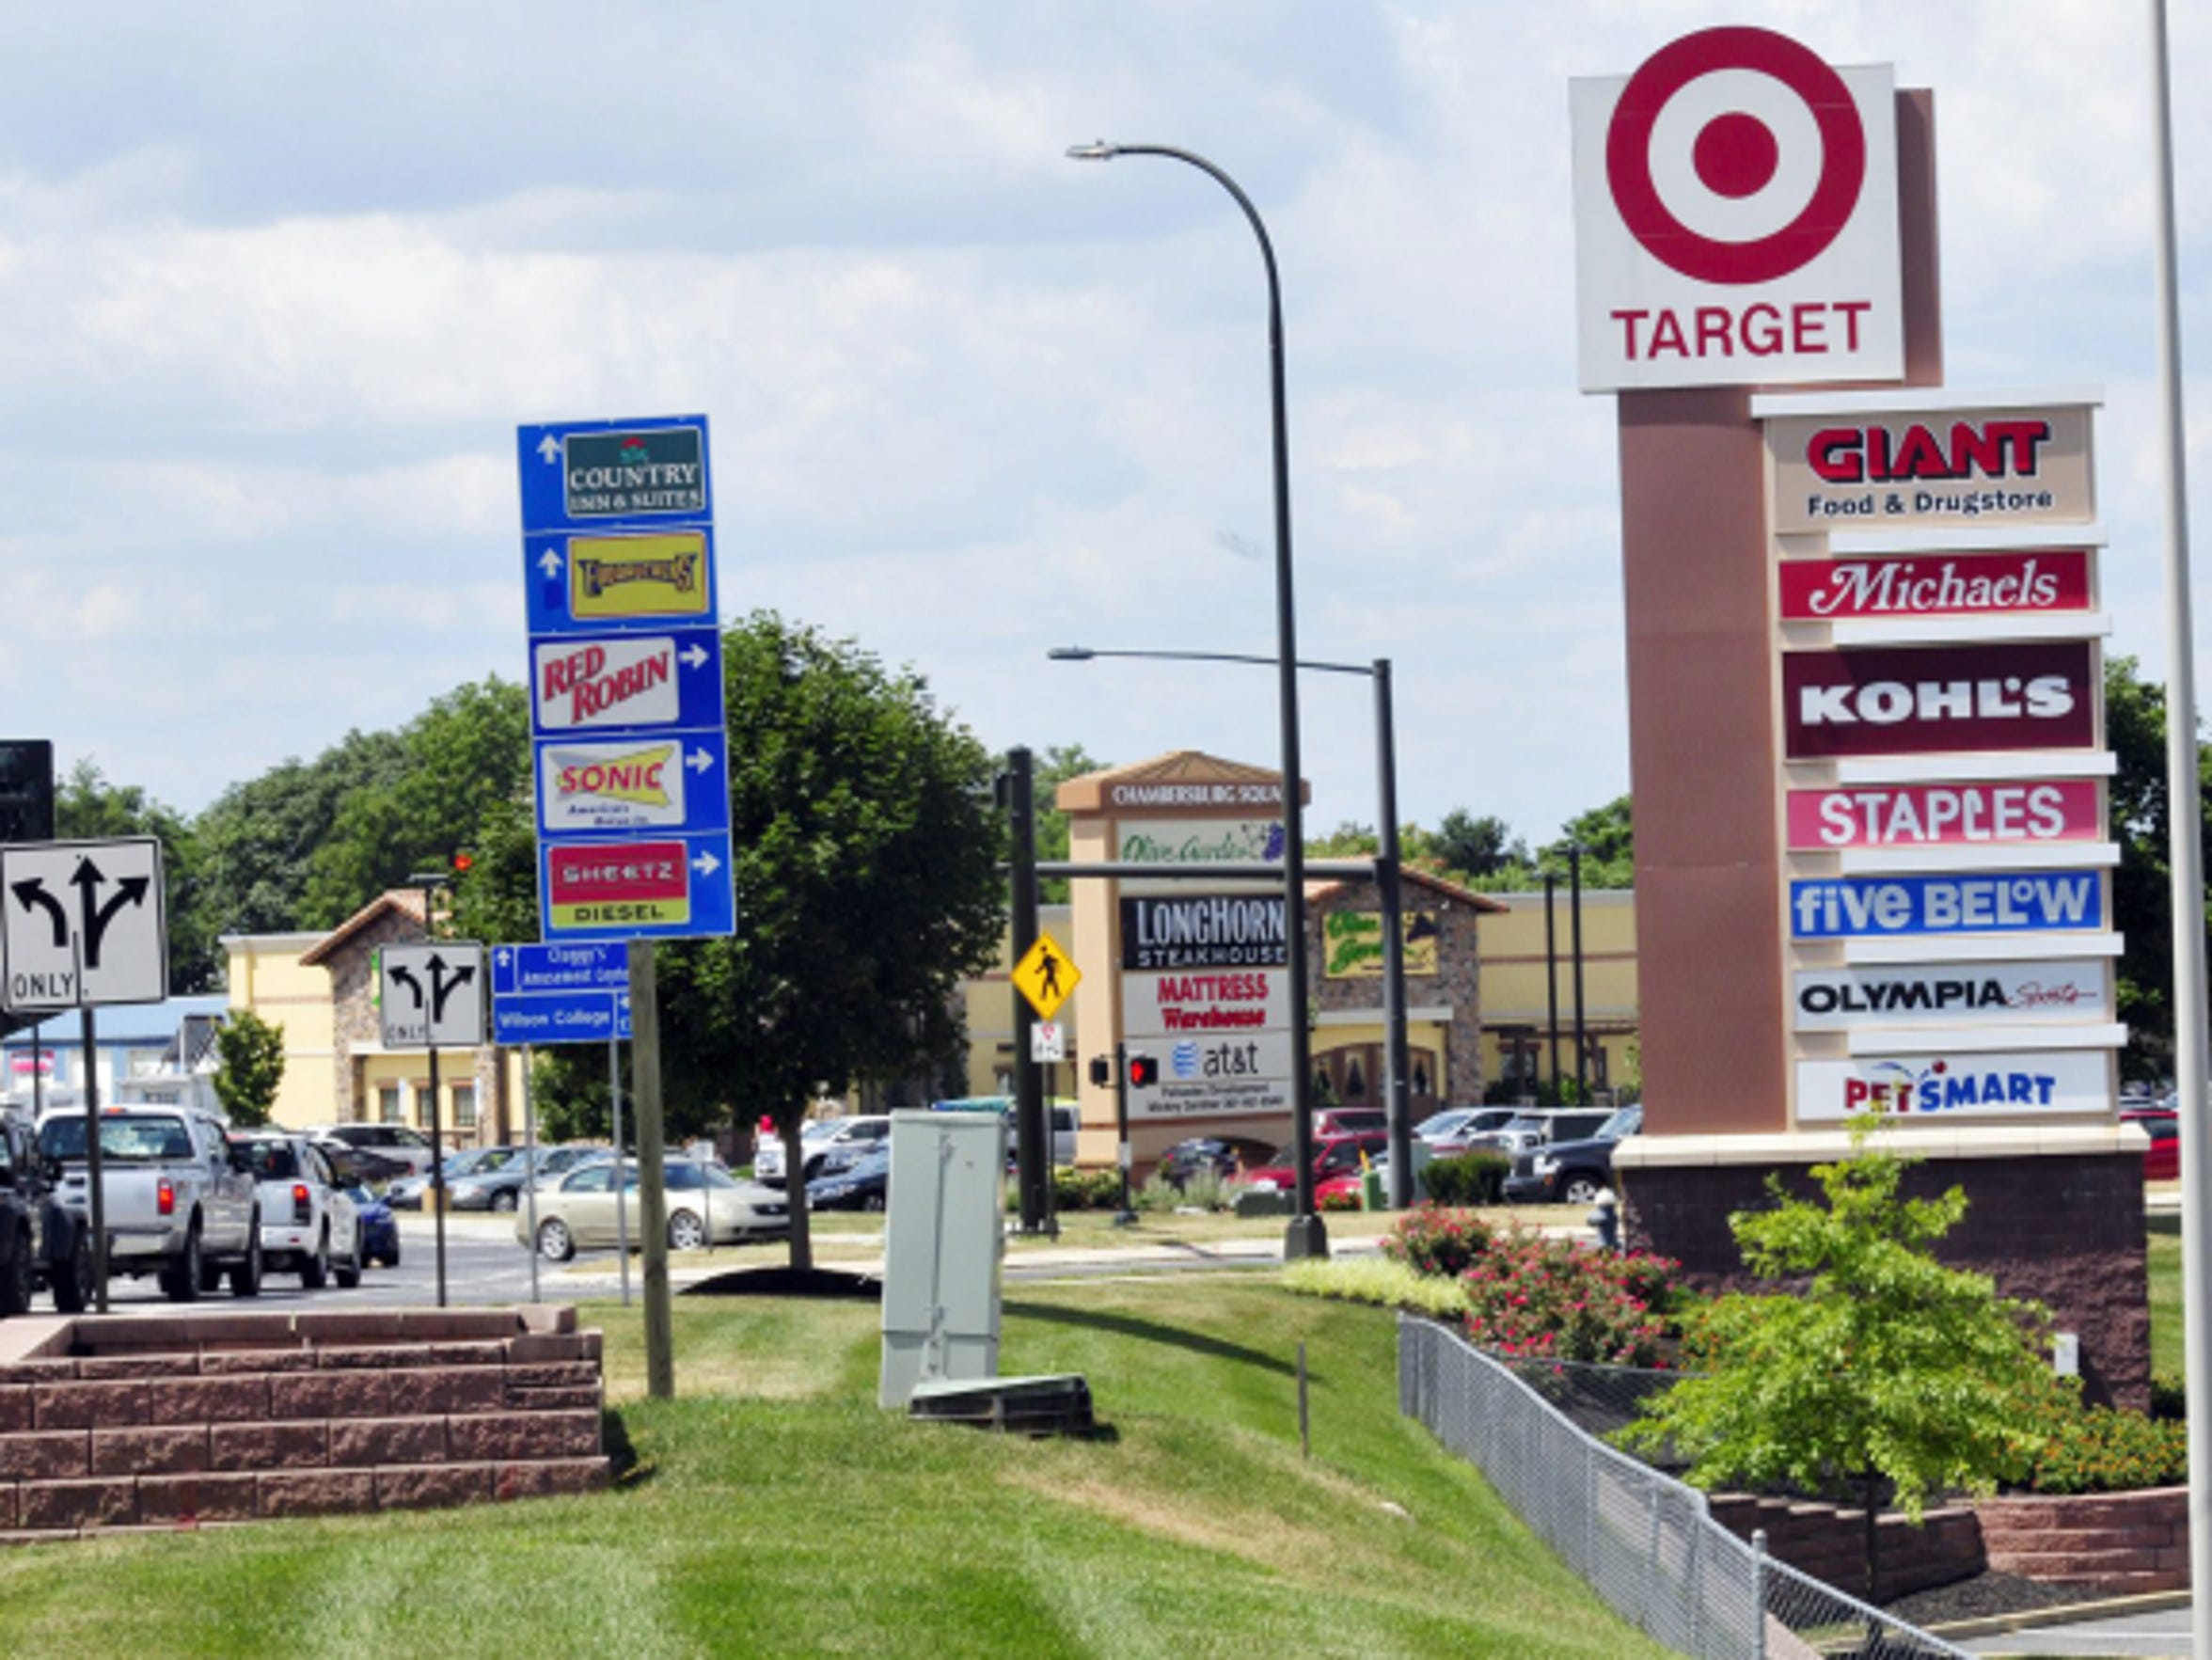 Since the first stores opened about a decade ago, development has exploded along Norland Avenue, Walker Road and the surrounding area. Stores include Target, Kohl's and Five Below, and restaurants include Olive Garden, Longhorn Steakhouse, Buffalo Wild Wings and many others.